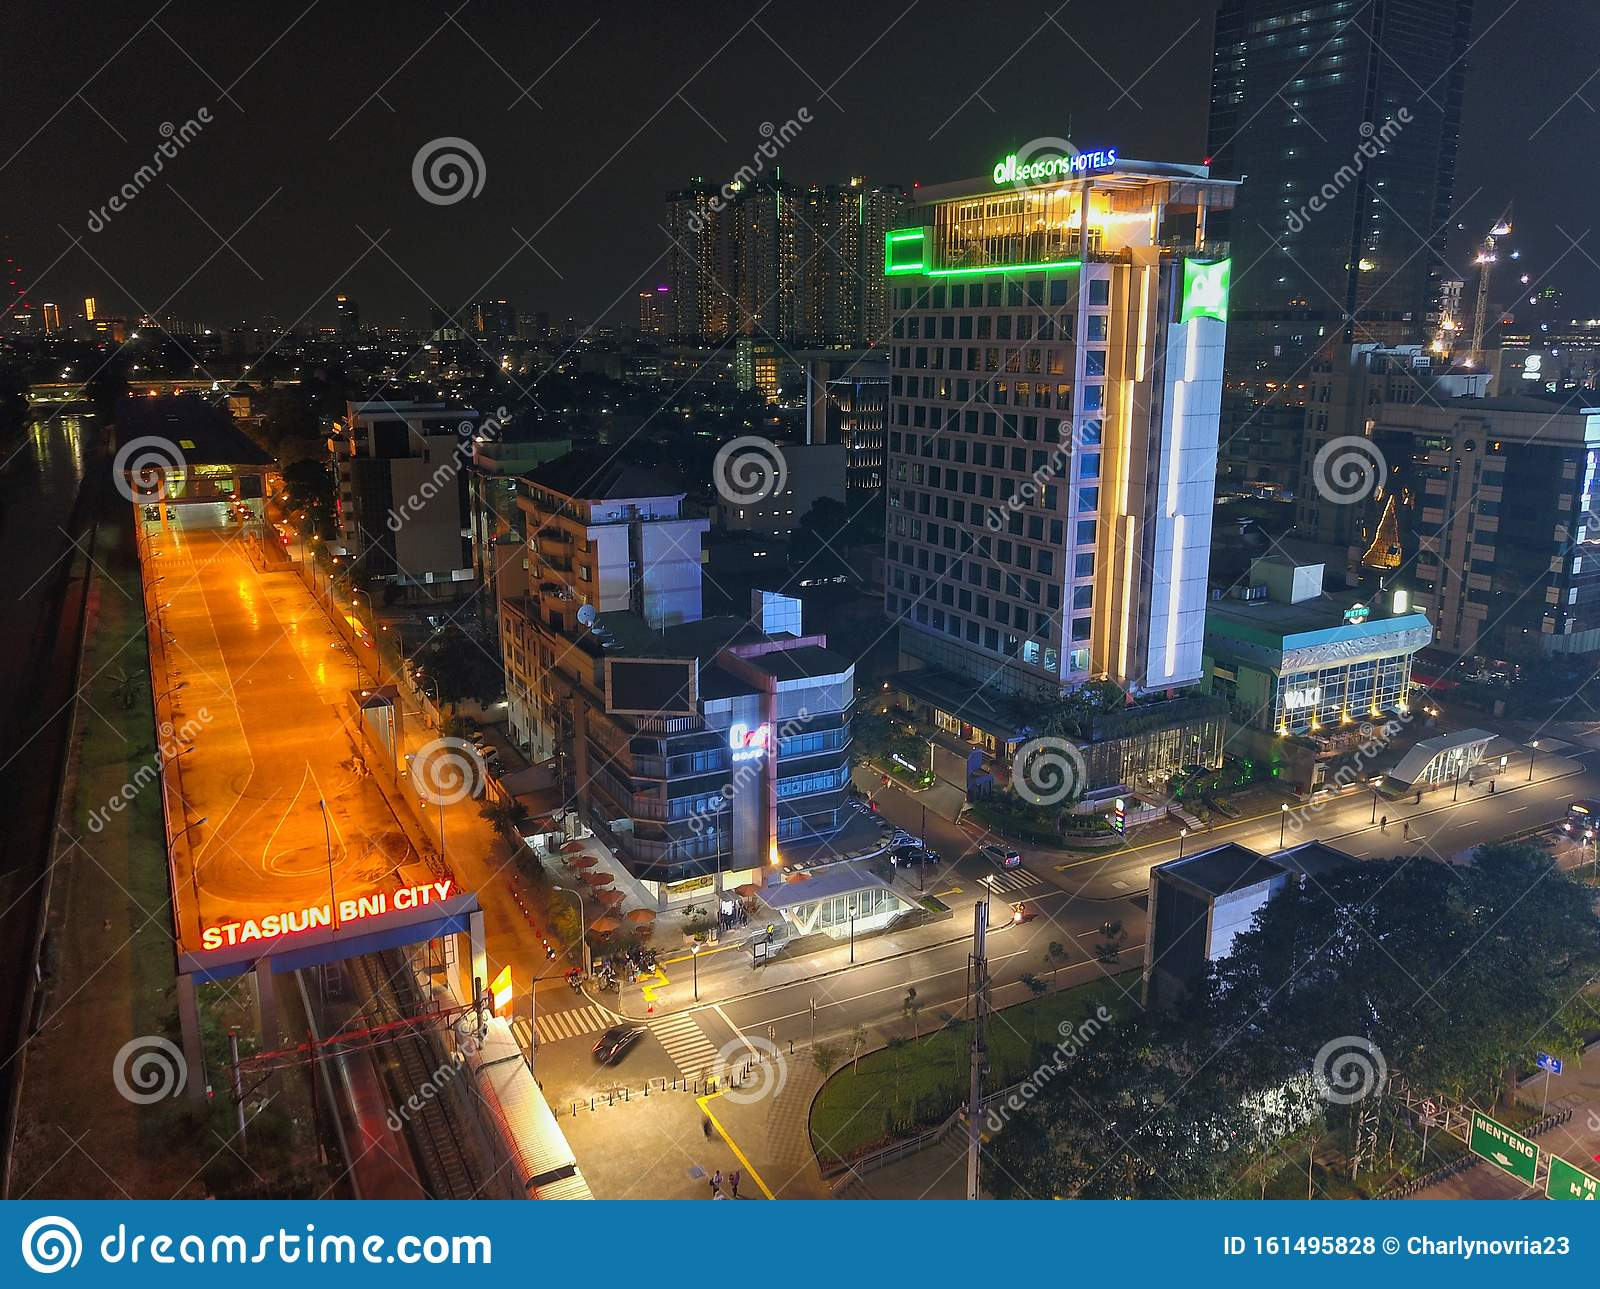 Jakarta Indonesia July 15 2019 Aerial View Of Bni City Station With Located In South Jakarta Central Business Distri Editorial Stock Photo Image Of Business City 161495828